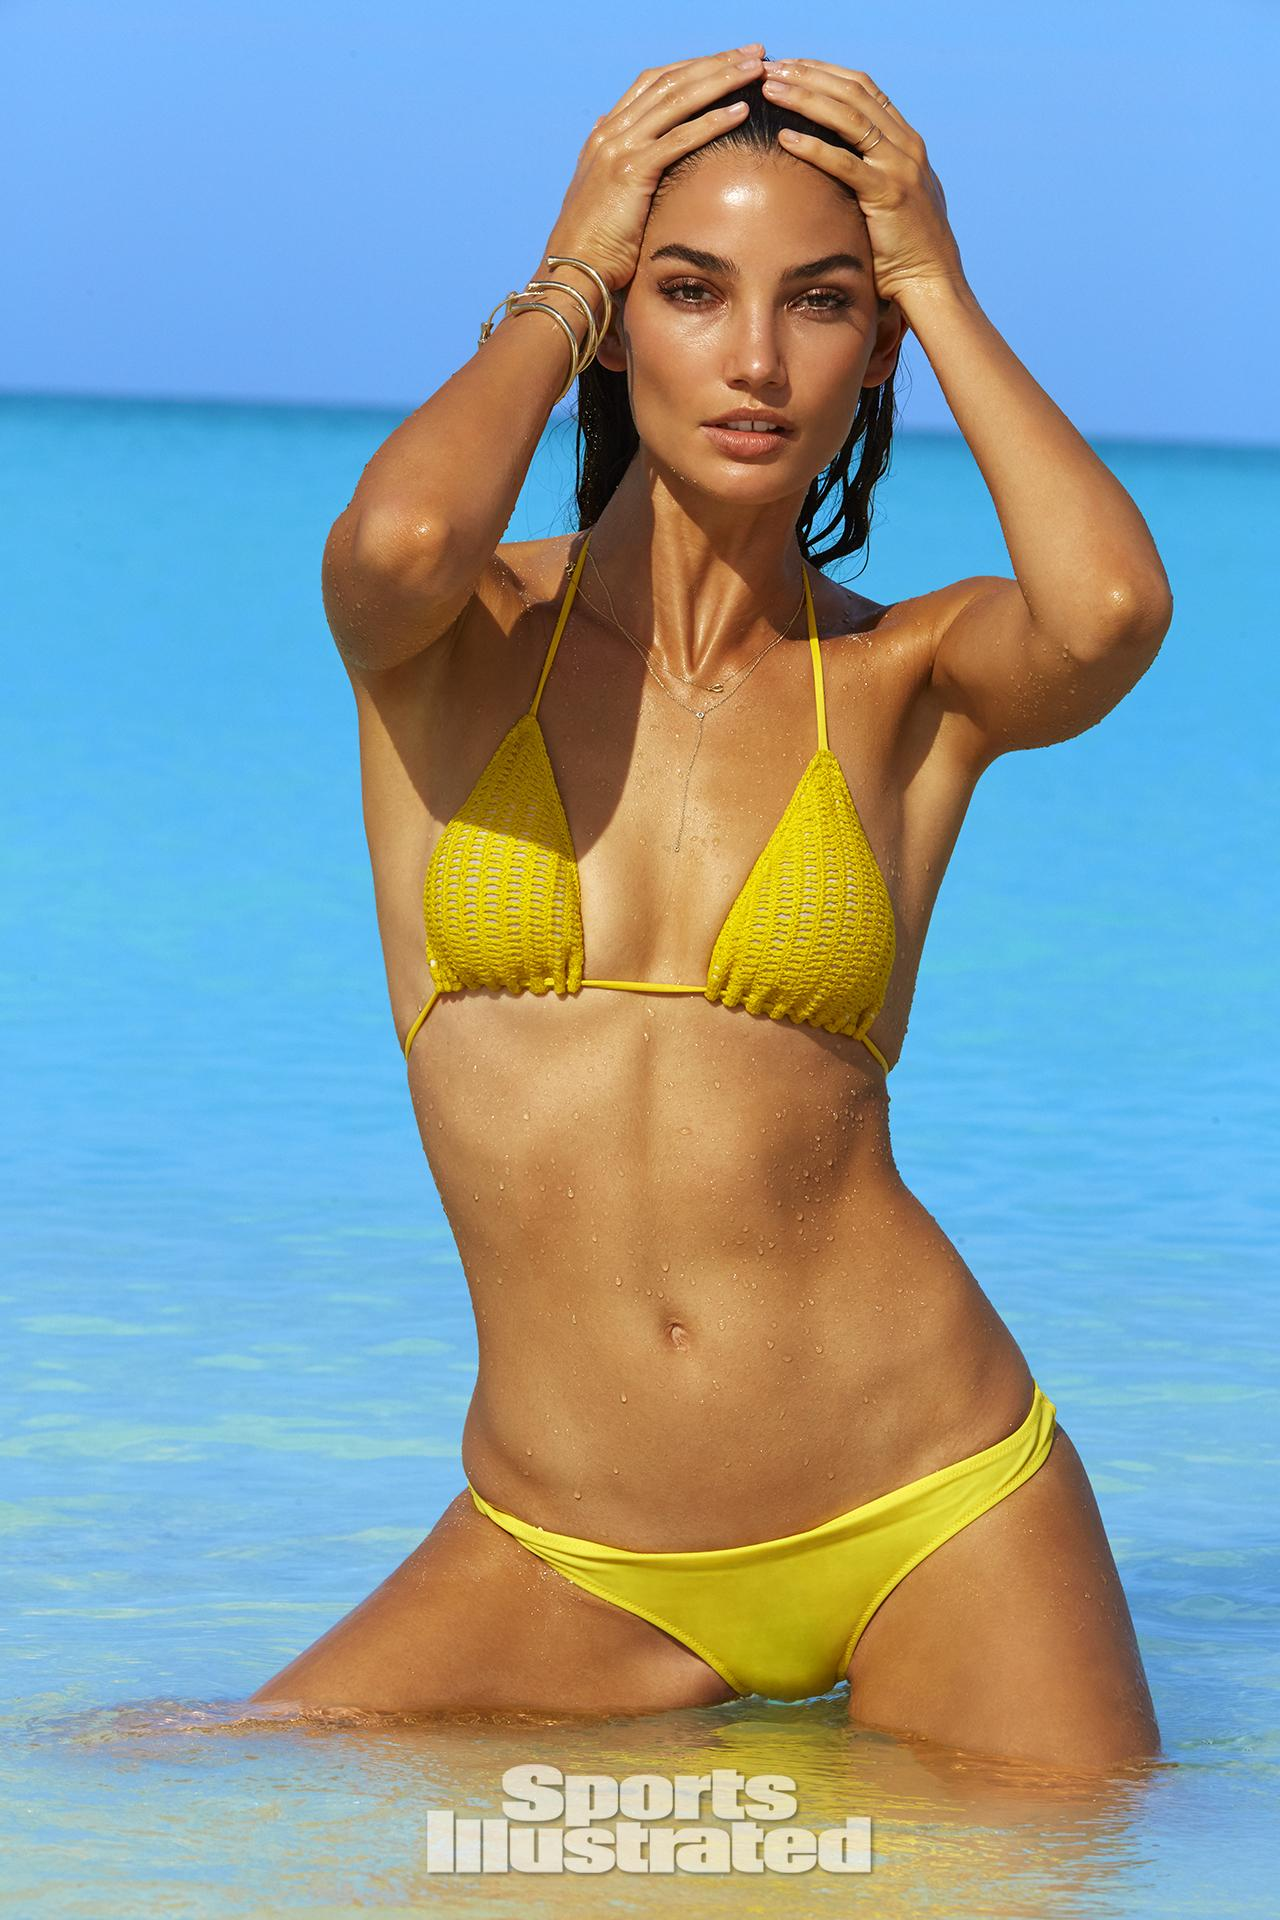 The hottest girls in and out of the tiniest bikinis.